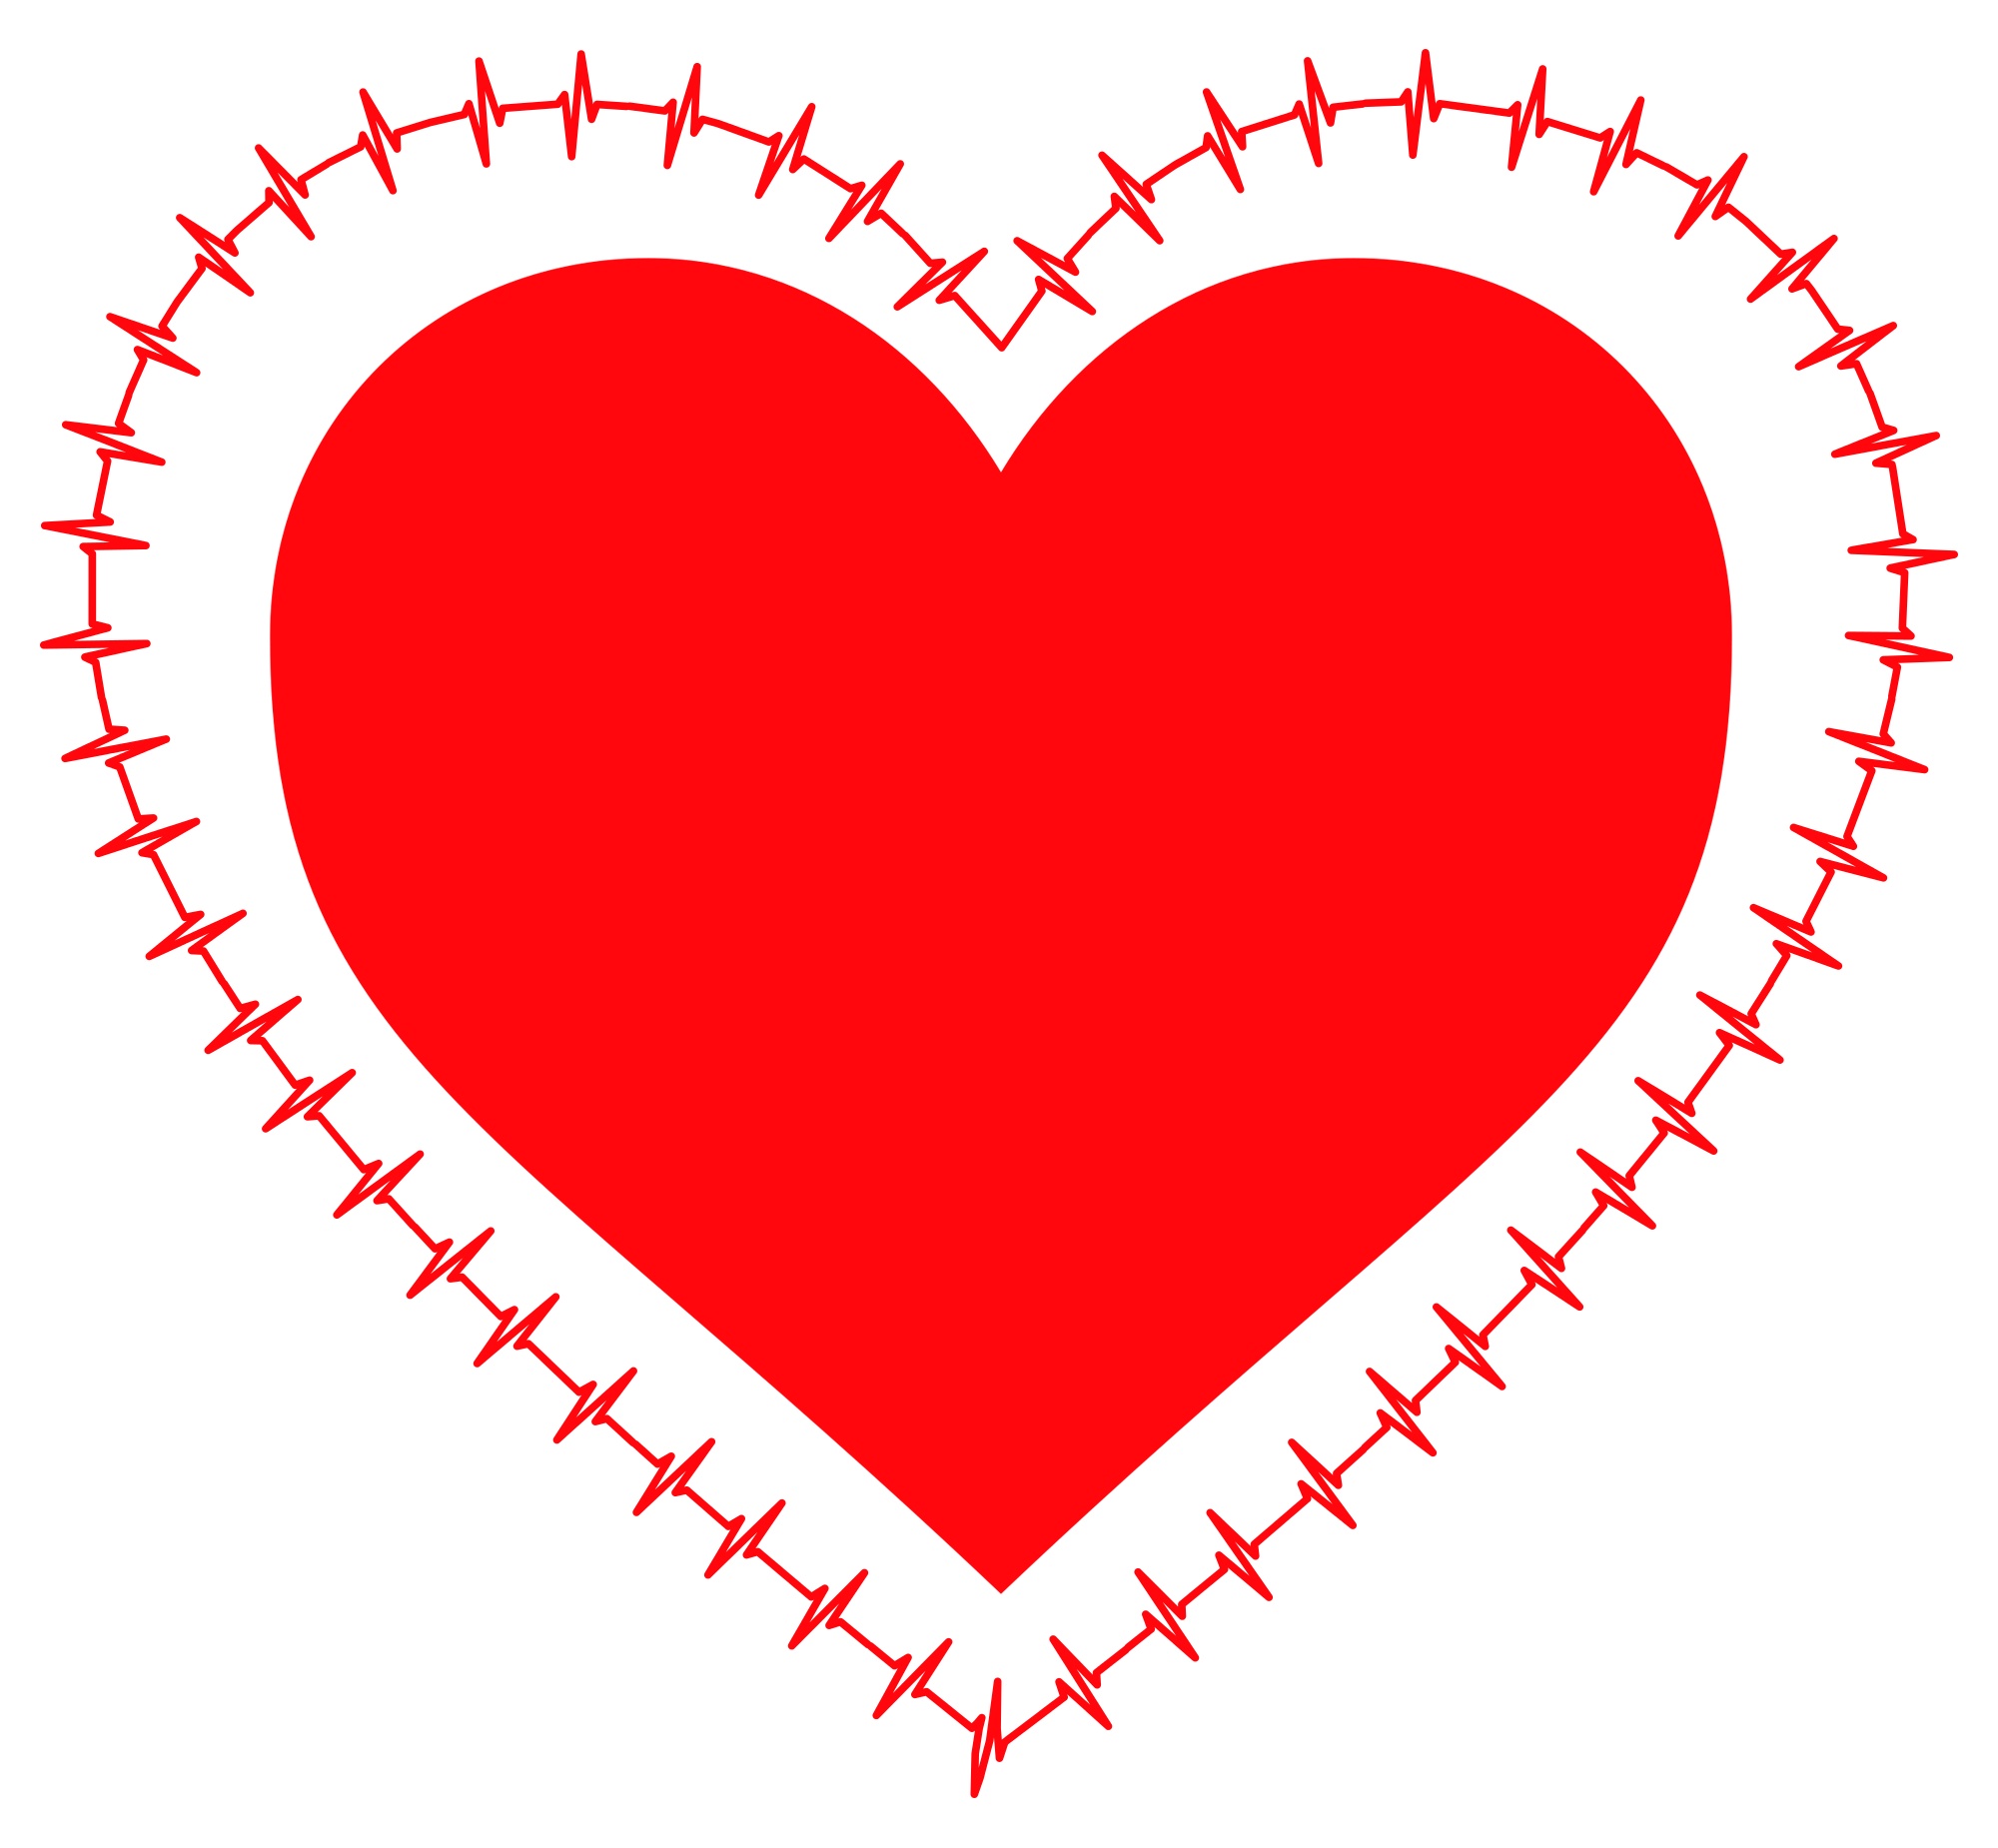 Love png images pngpix heart vector png transparent image thecheapjerseys Image collections